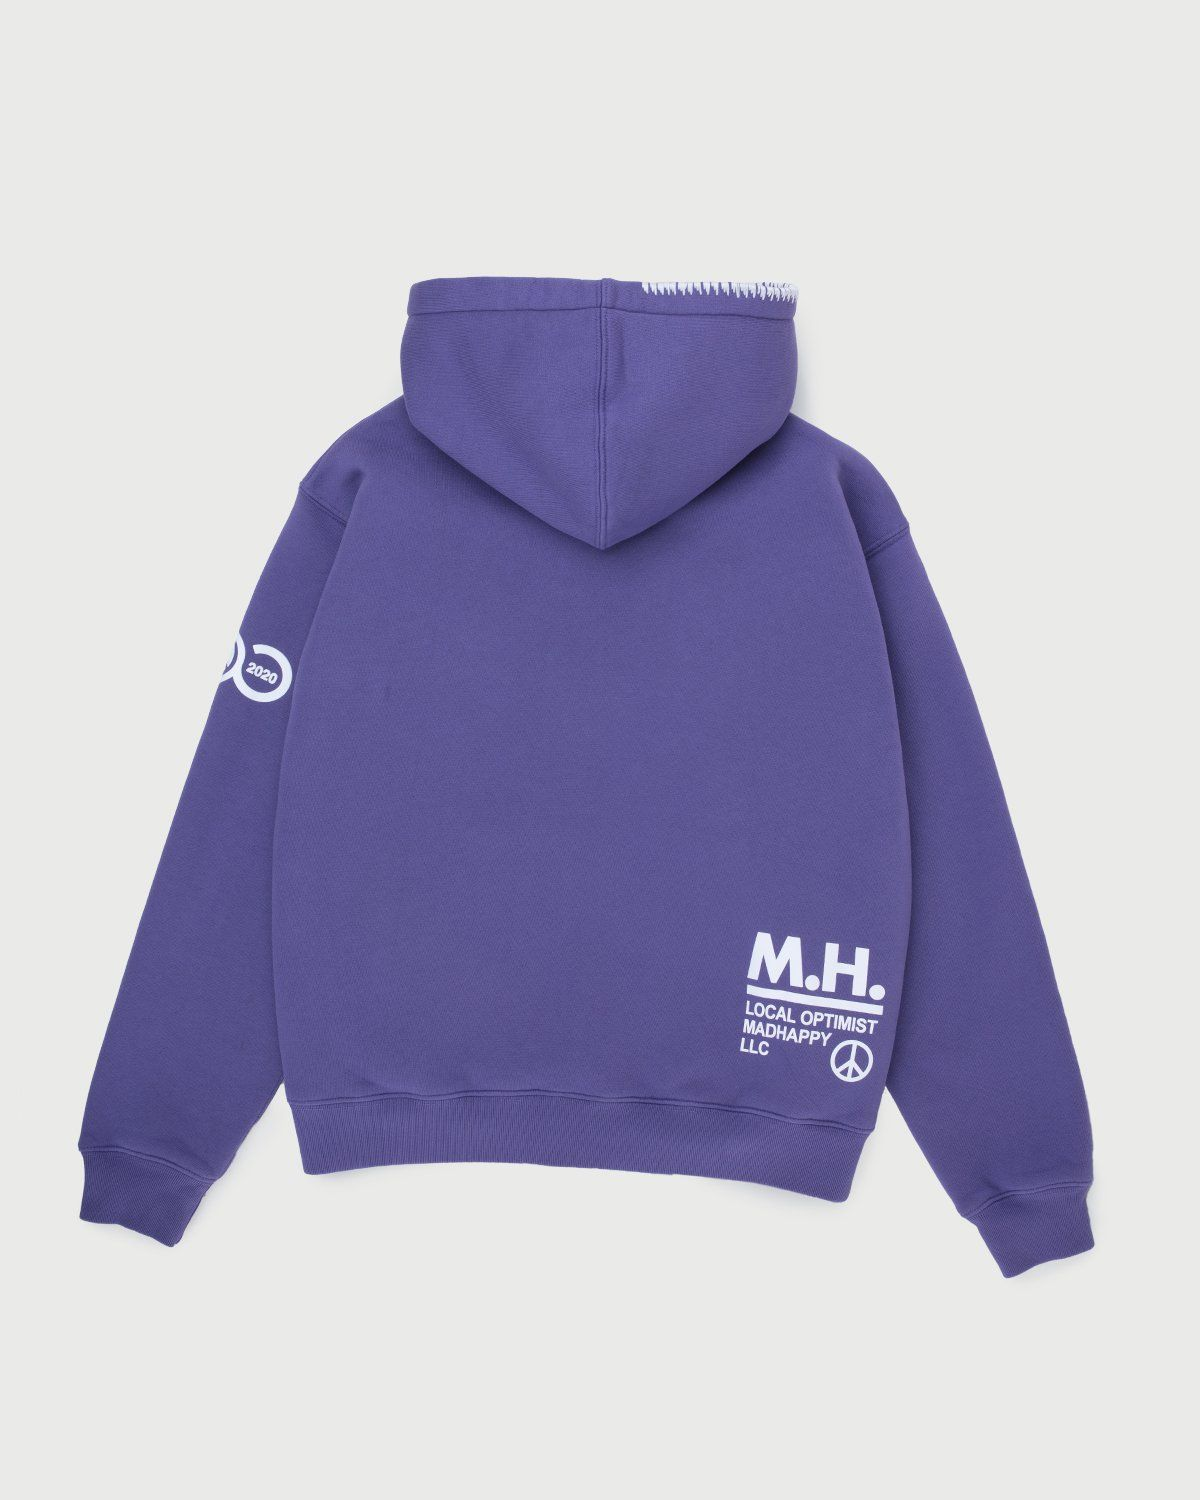 Colette Mon Amour x Madhappy  — Hoodie Purple - Image 4